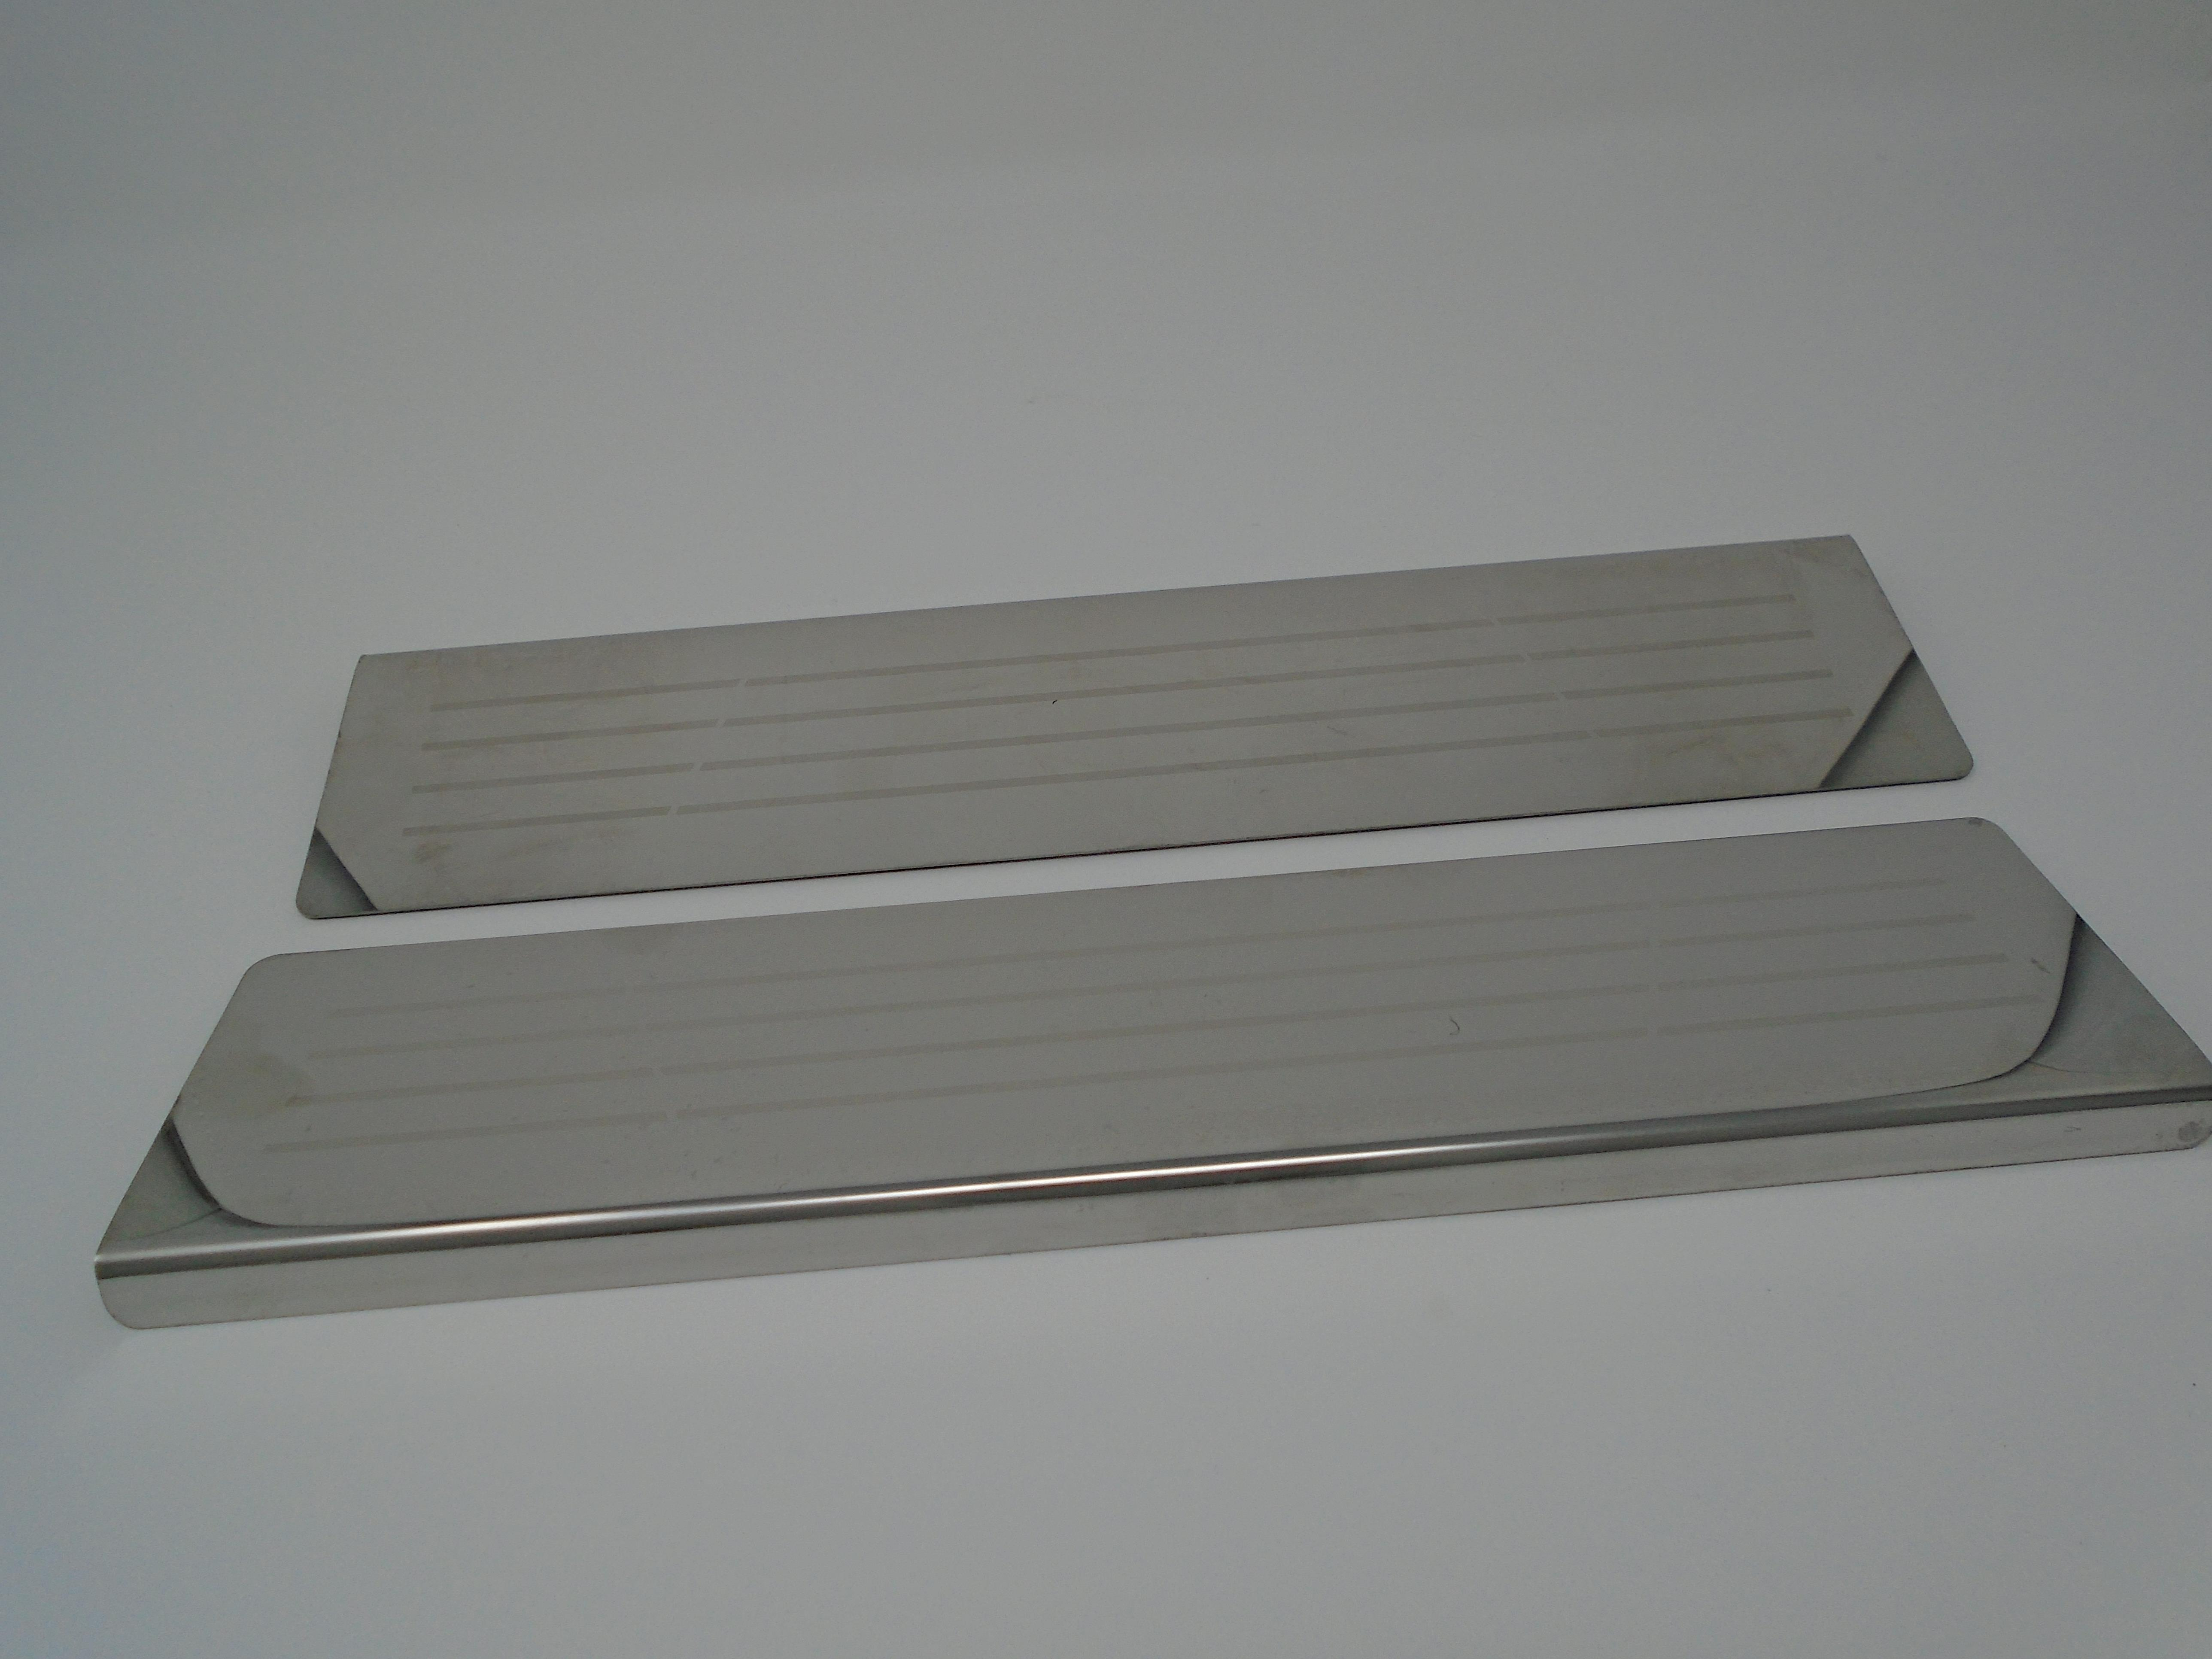 Door Sill Covers Ford Ranger T6 2016 Up Country 4x4 And